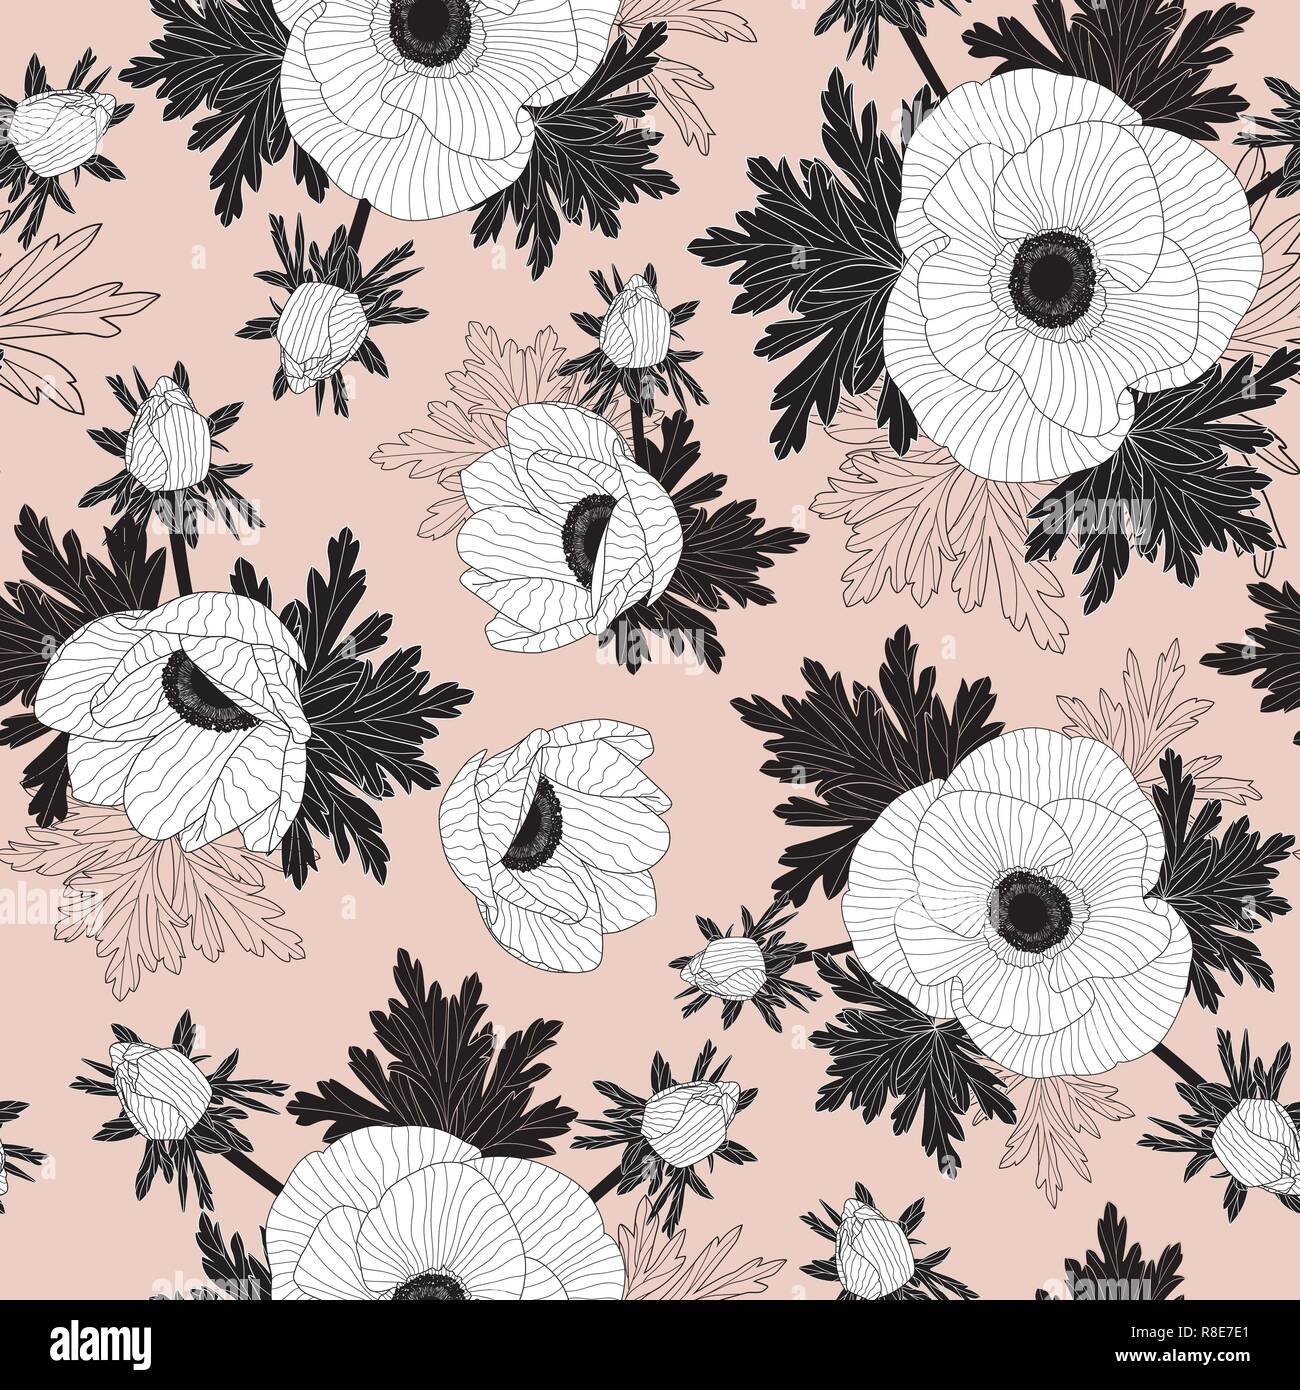 Floral seamless vector pattern with beautiful anemone flowers on pink background. - Stock Vector